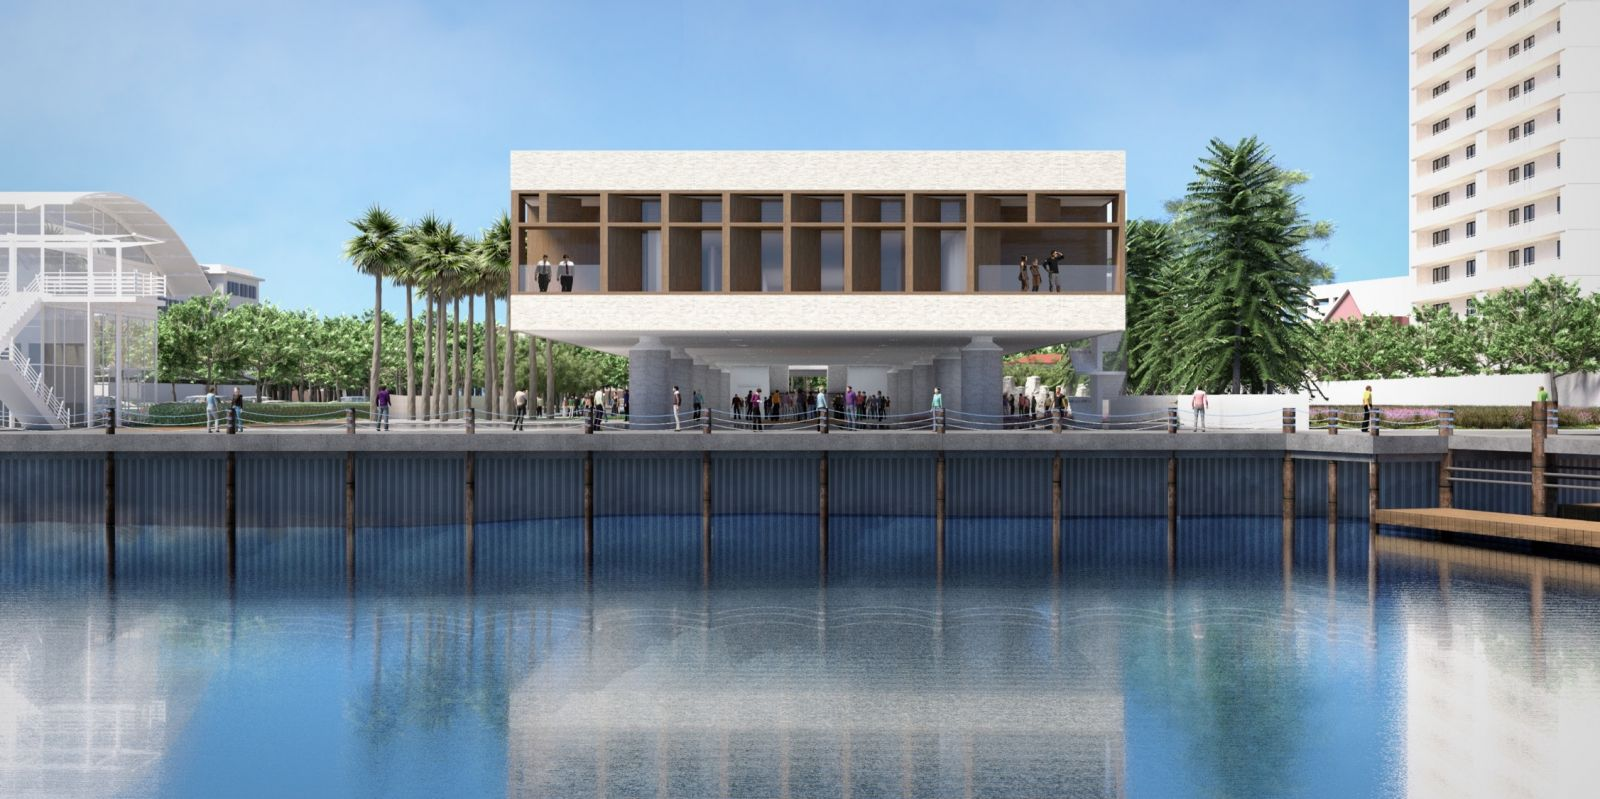 A spokeswoman for the International African American Museum said the museum is within $2 million of its $25 million fundraising goal. (Rendering/Provided)